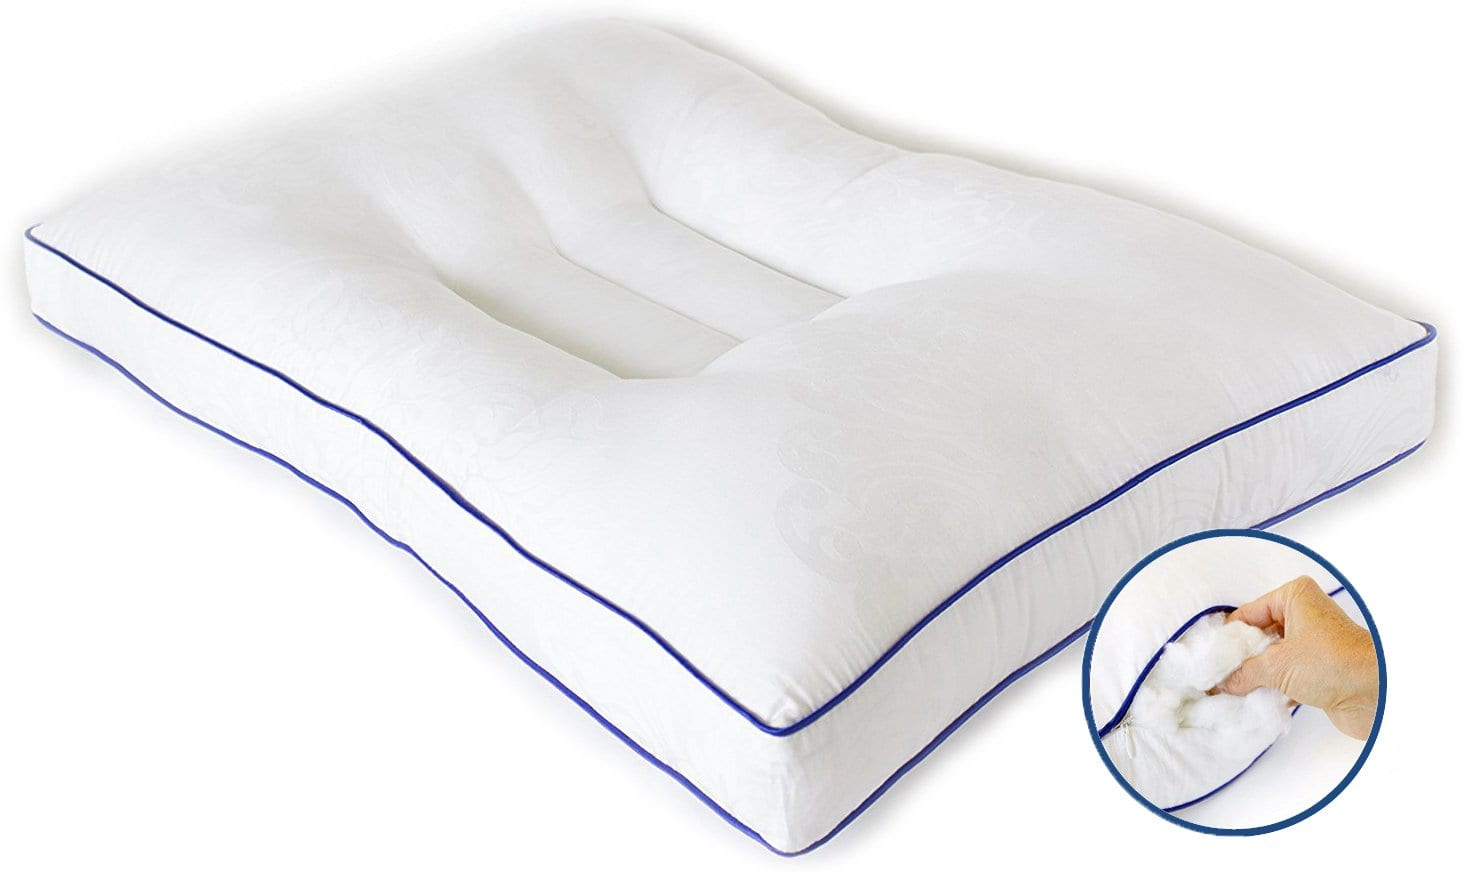 Nature's Guest Best Contour Pillows Review by www.dailysleep.org